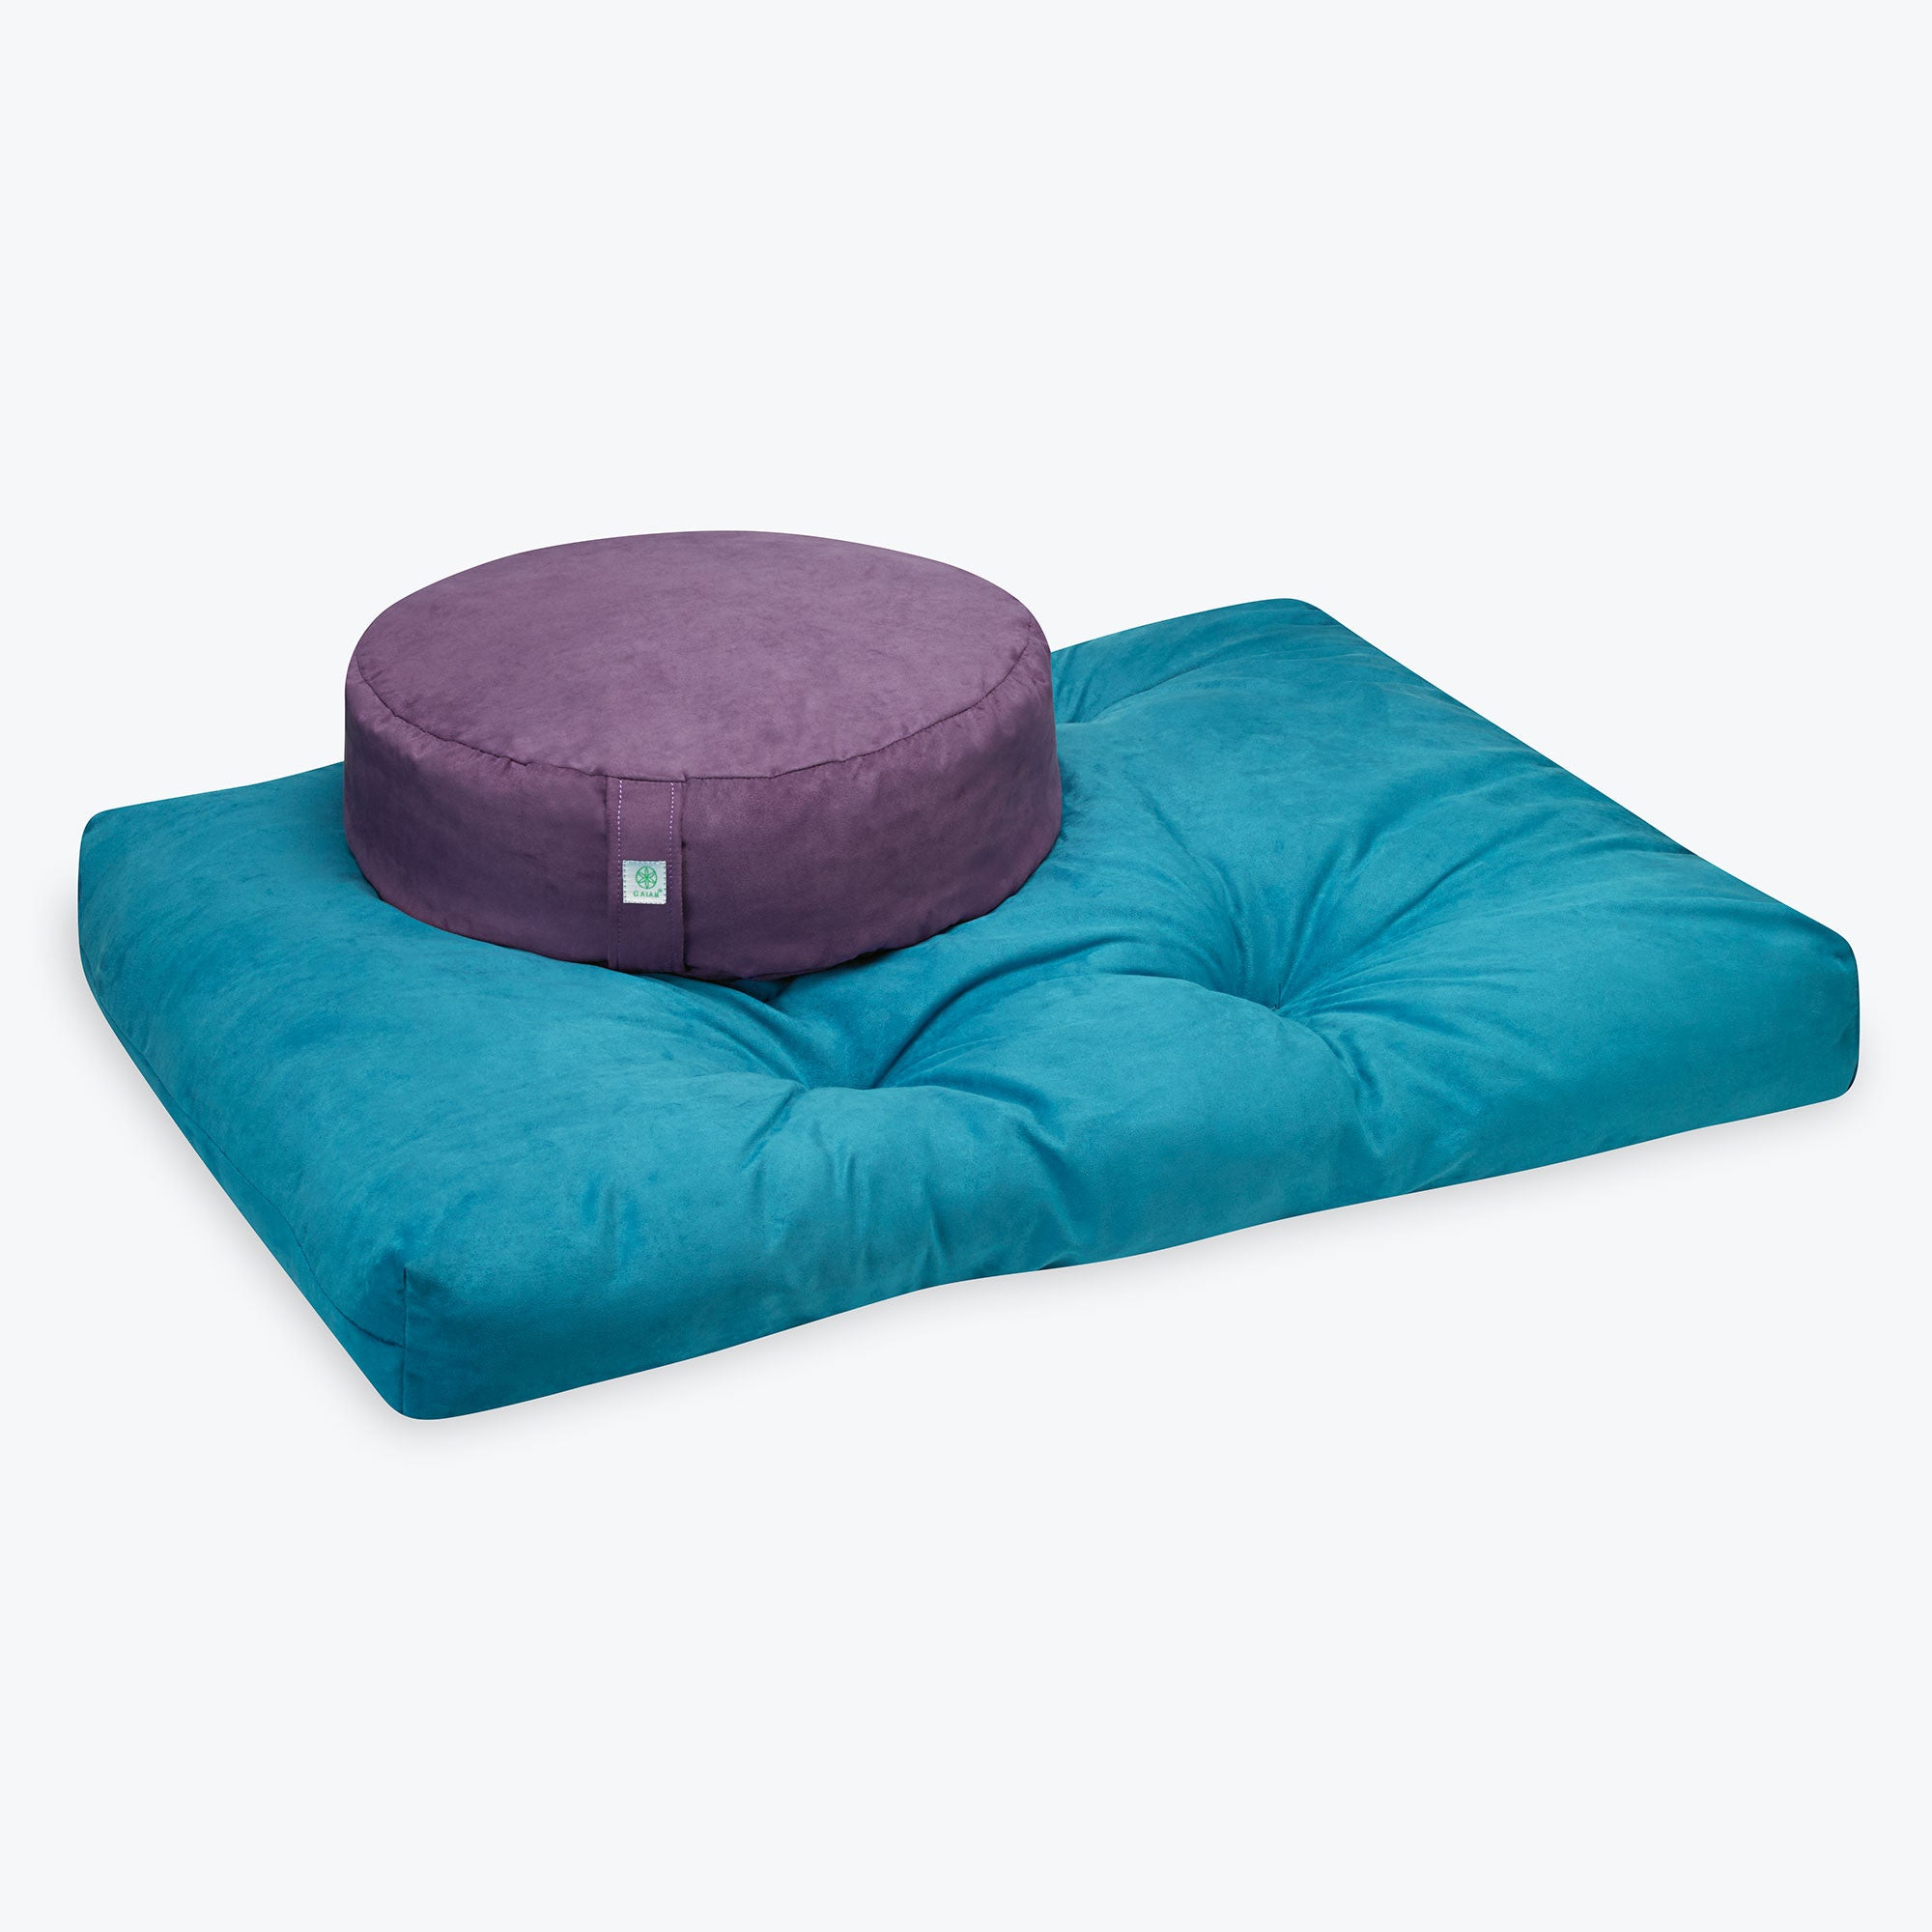 Zabuton Floor Cushion - Gaiam